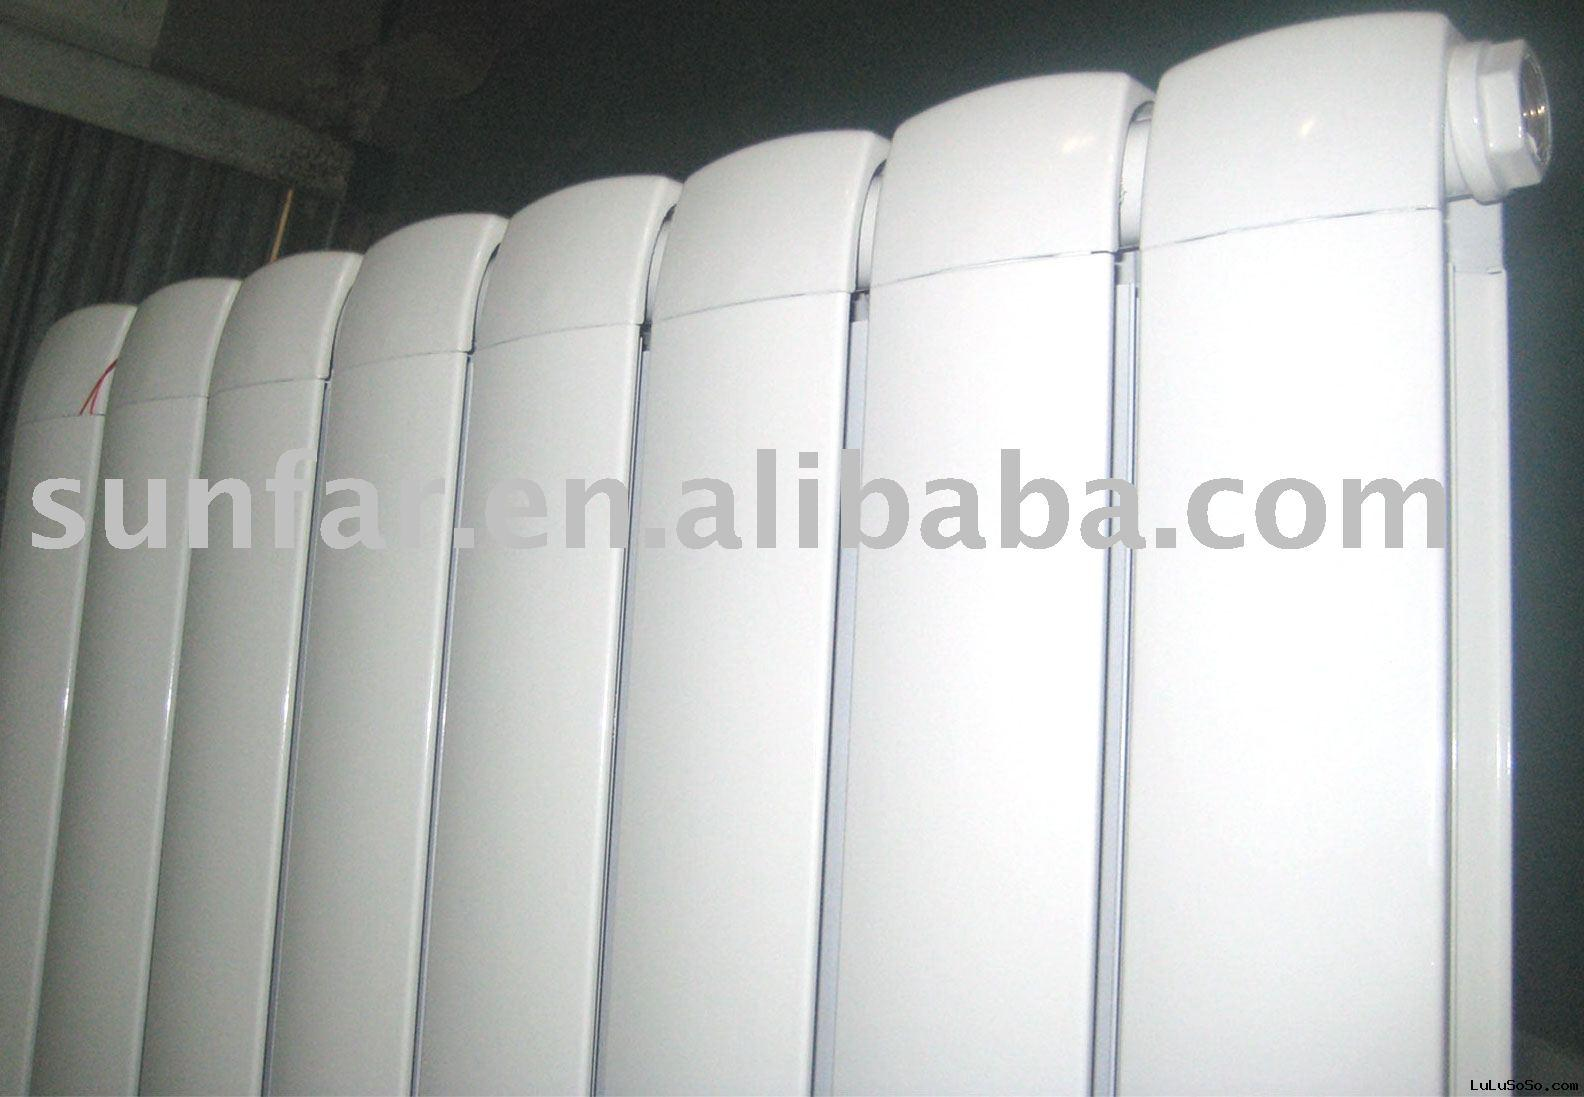 copper-aluminum heater Radiator